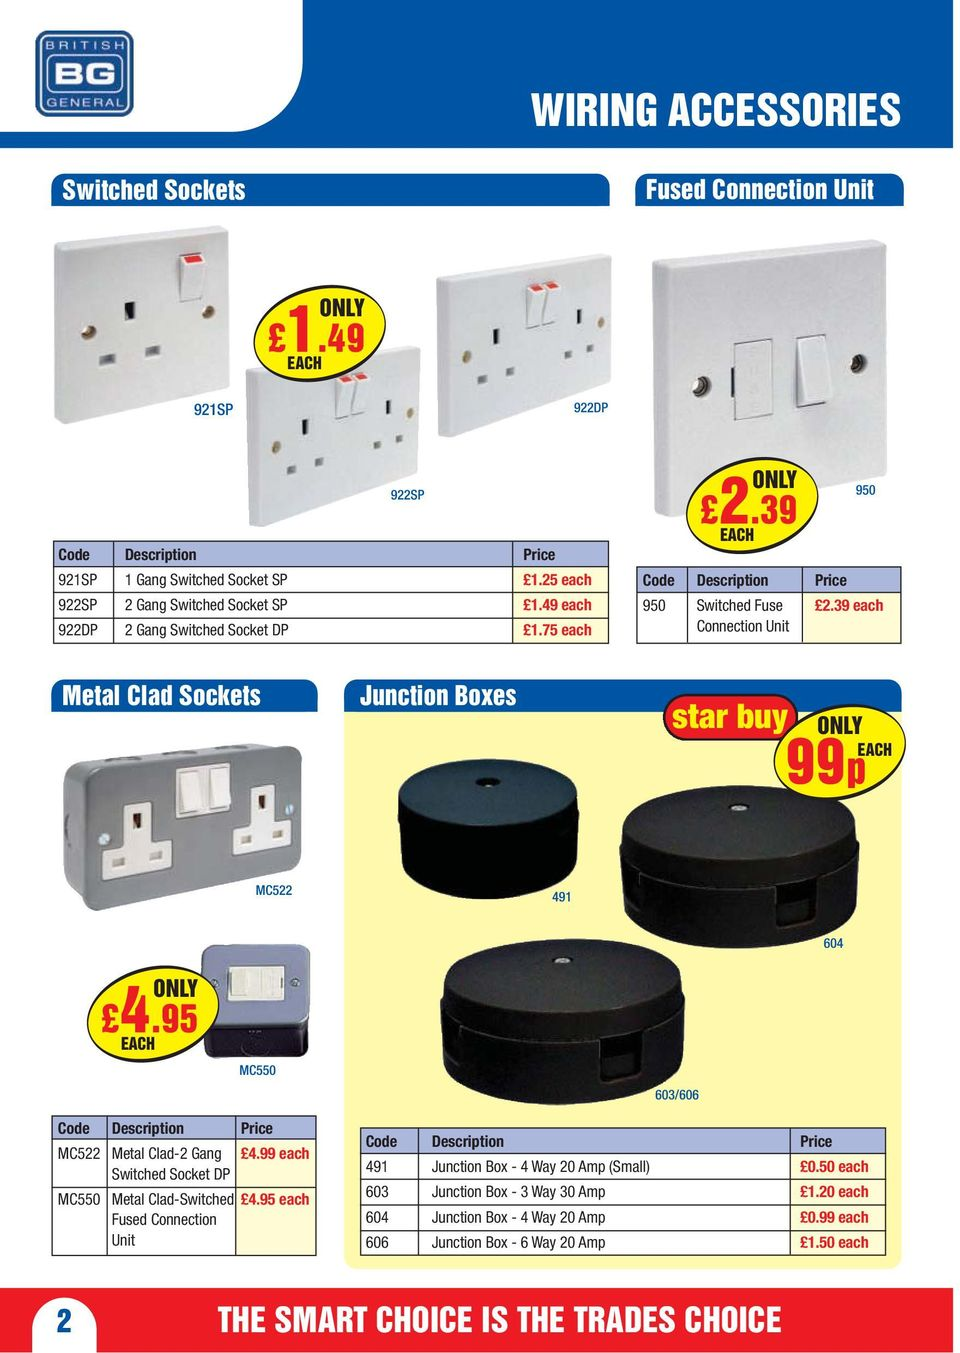 Trades Choice The Top Brands Lowest Prices Issue 1 High 130 Fused Junction Box 95 Mc550 603 606 Mc522 Metal Clad 2 Gang 499 Each Switched Socket Dp